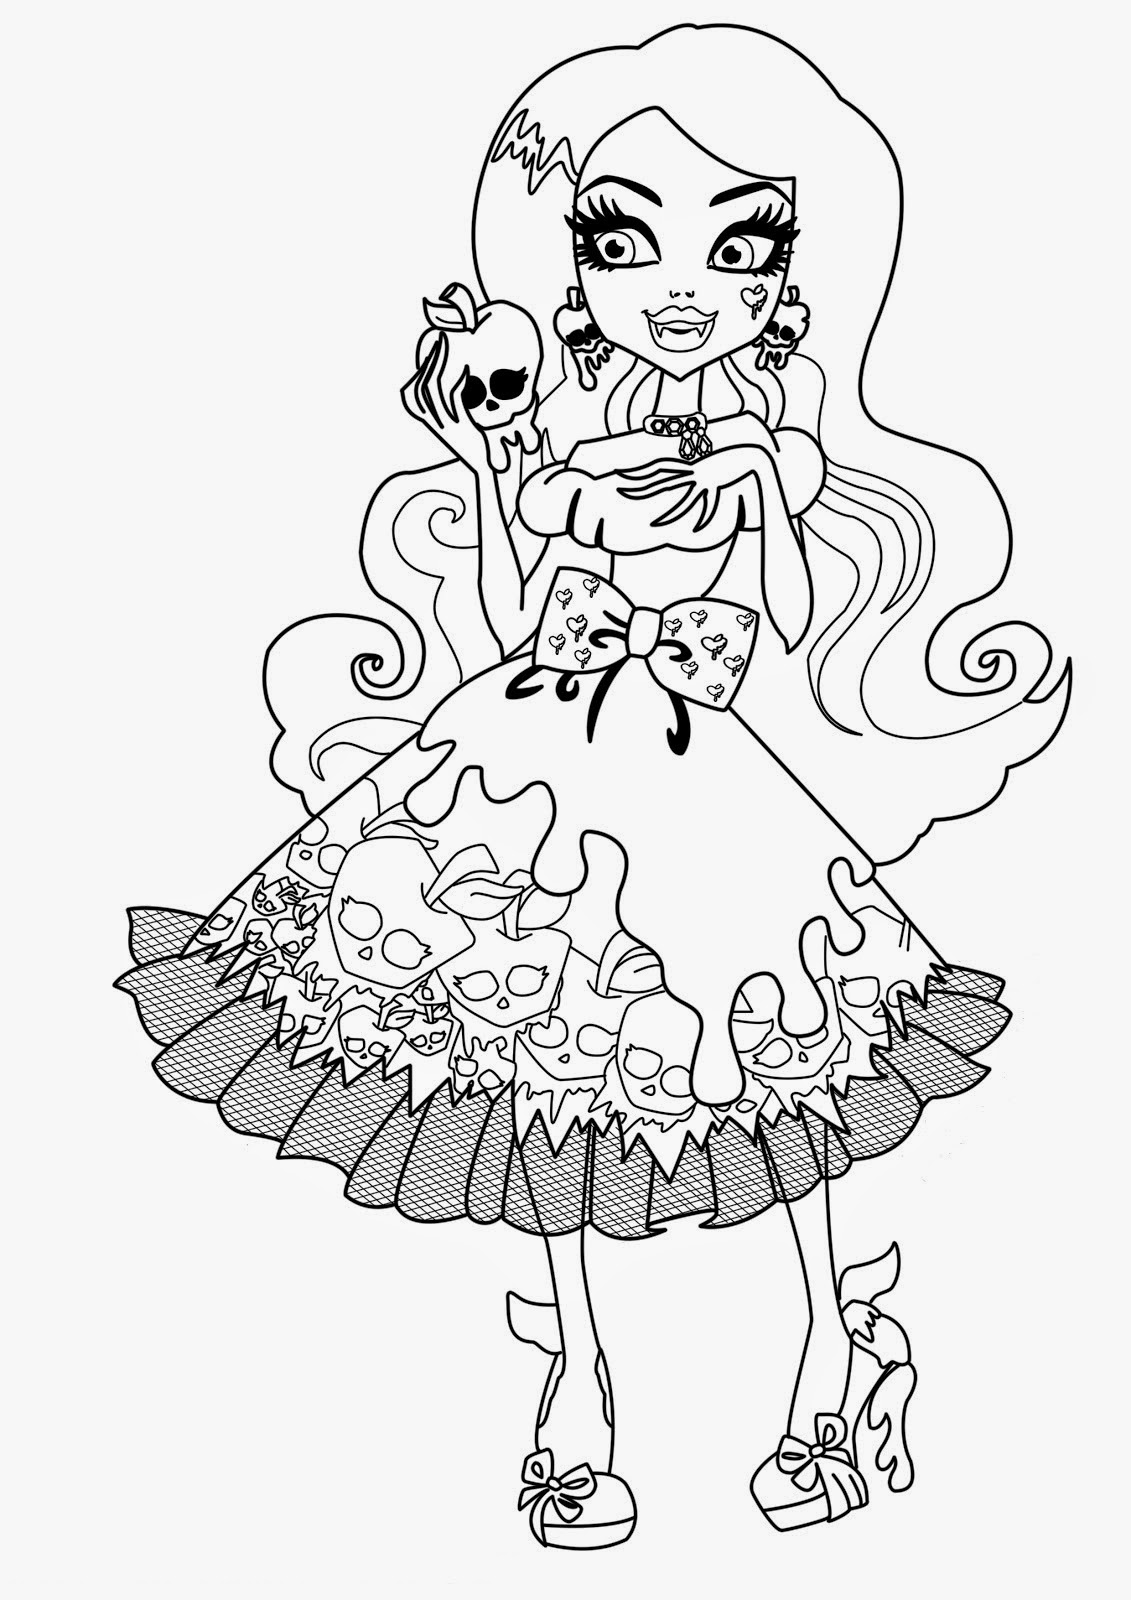 printable monster high coloring pages free printable monster high coloring pages for kids pages printable monster coloring high